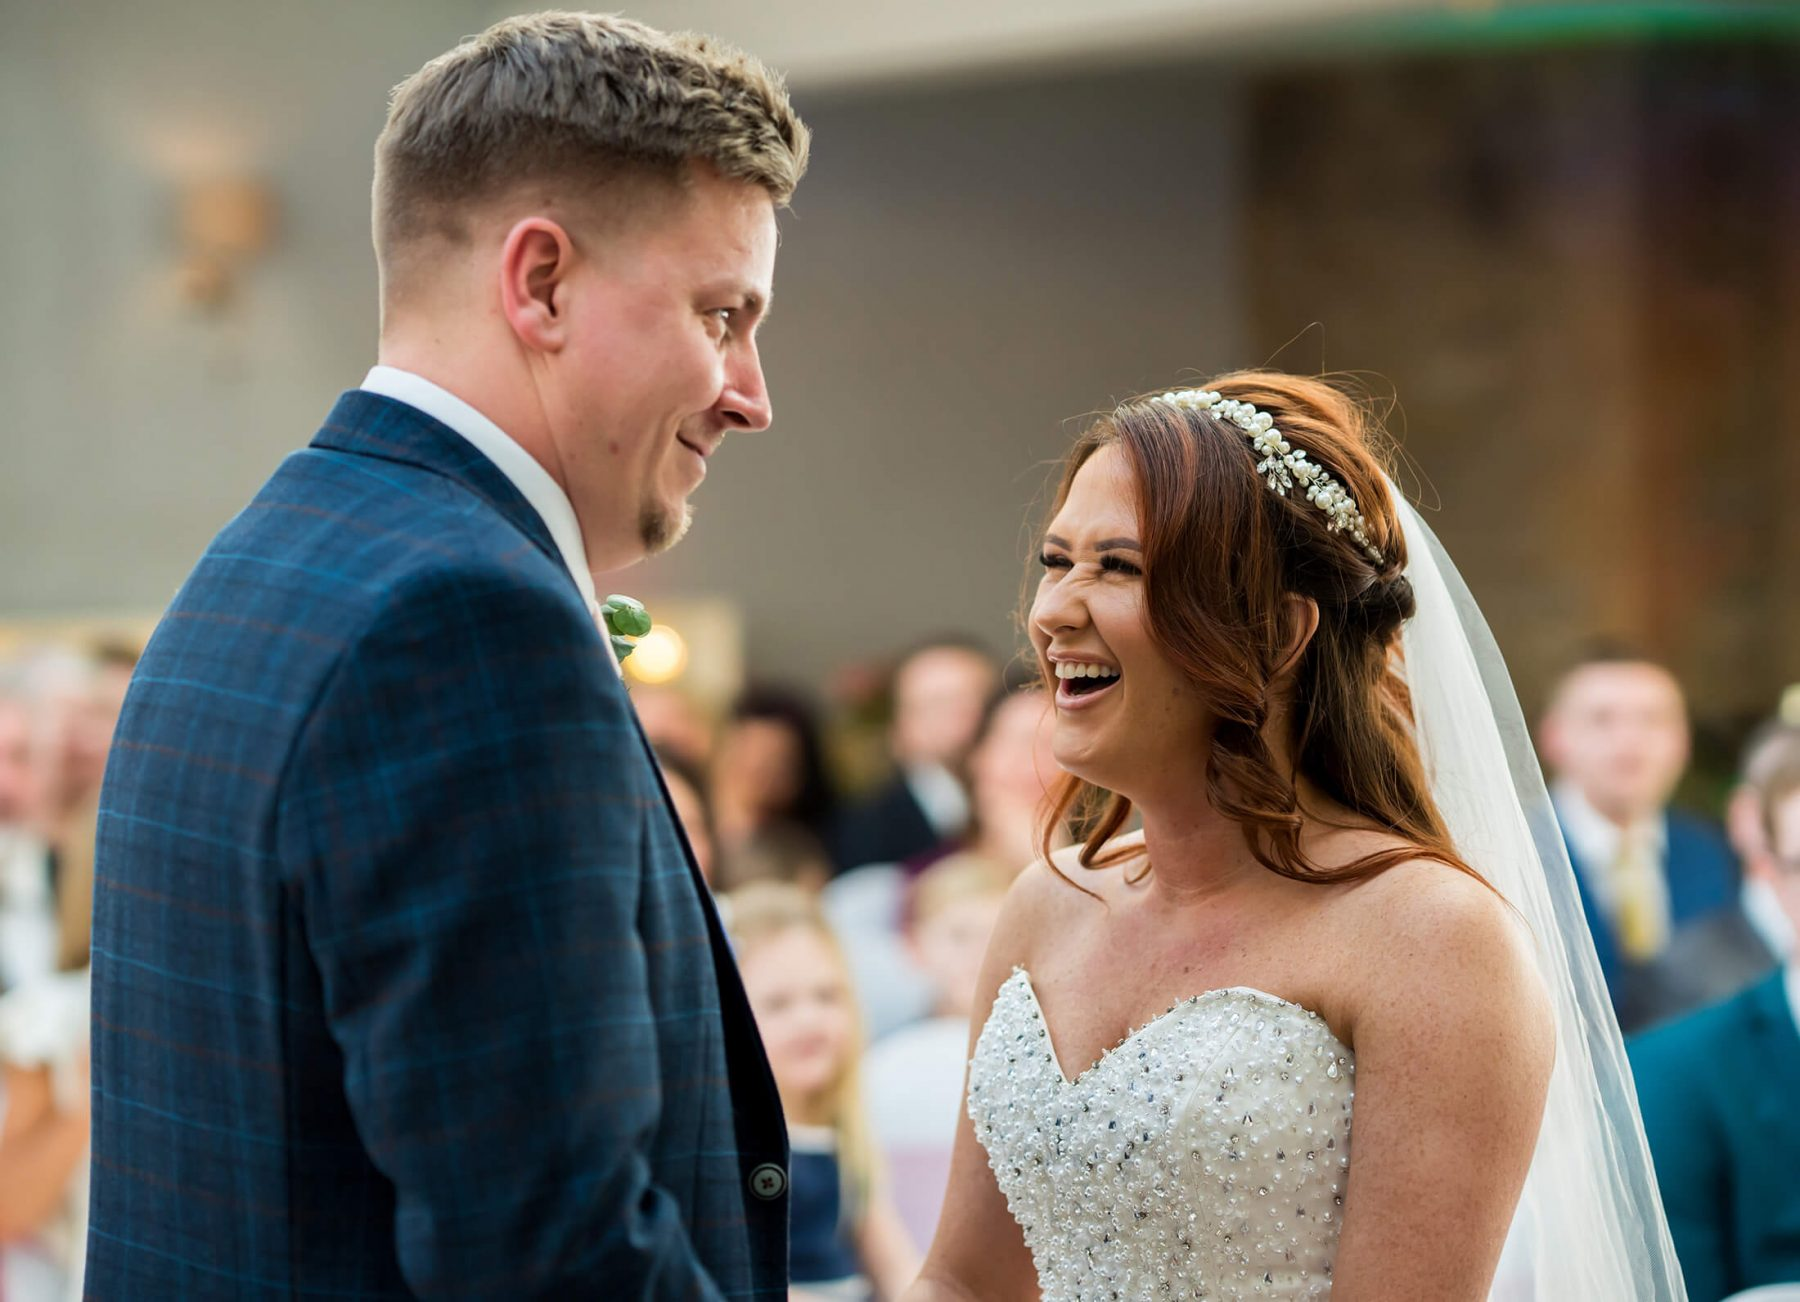 Hollin Hall Hotel Wedding Photographer - The bride and groom laugh during the ceremony